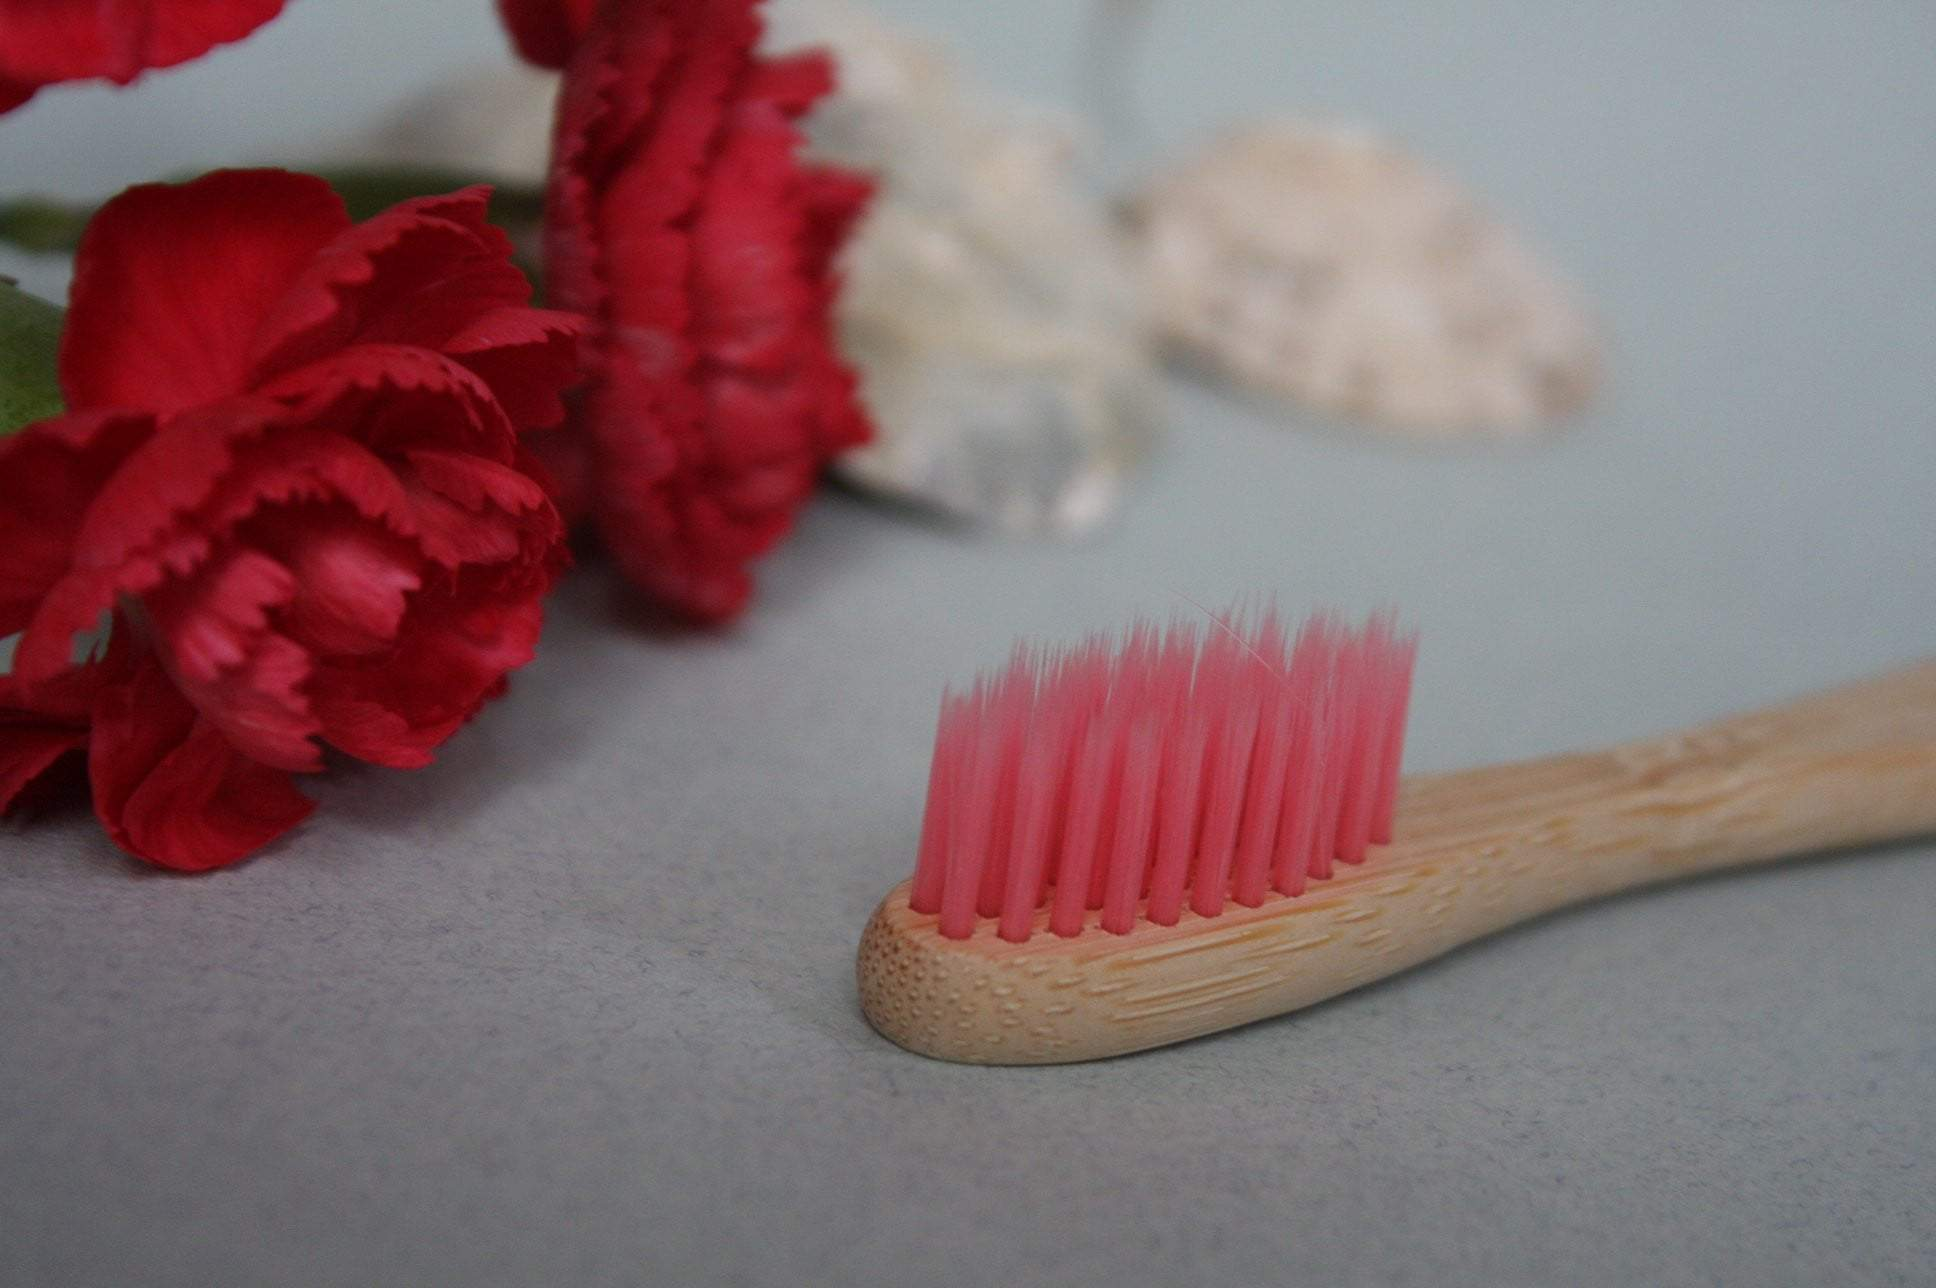 Pink Bamboo Wood Toothbrush - Pro Charcoal